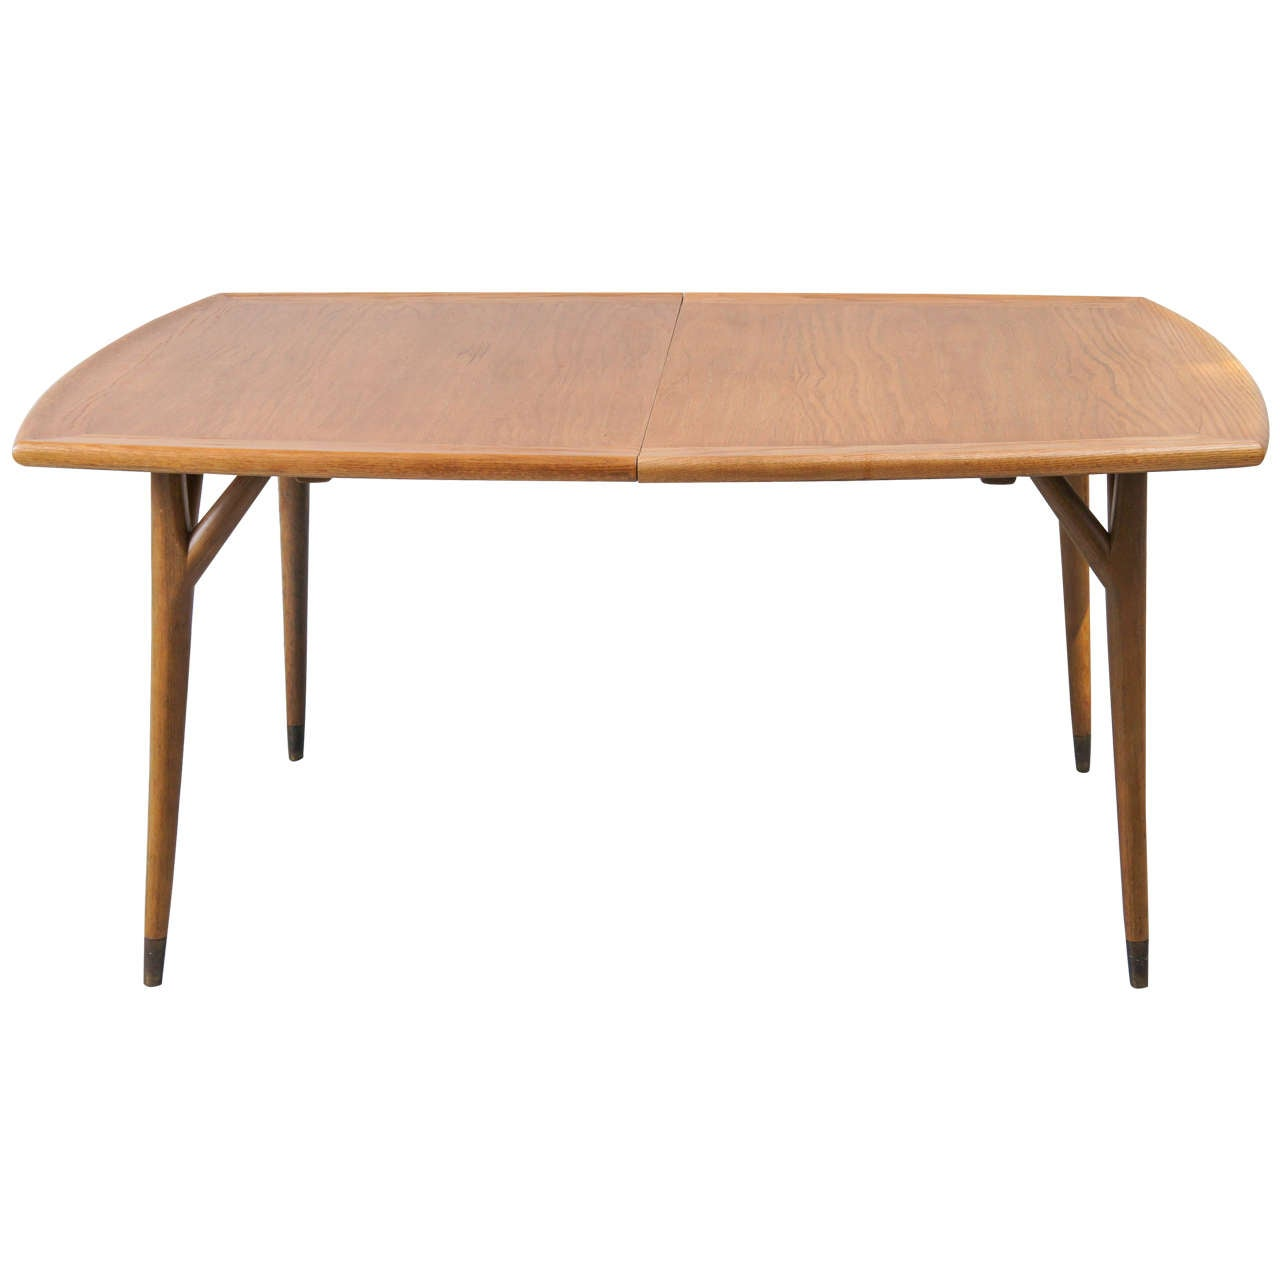 Mid century dining table by jack van der molen at 1stdibs for Furniture jack